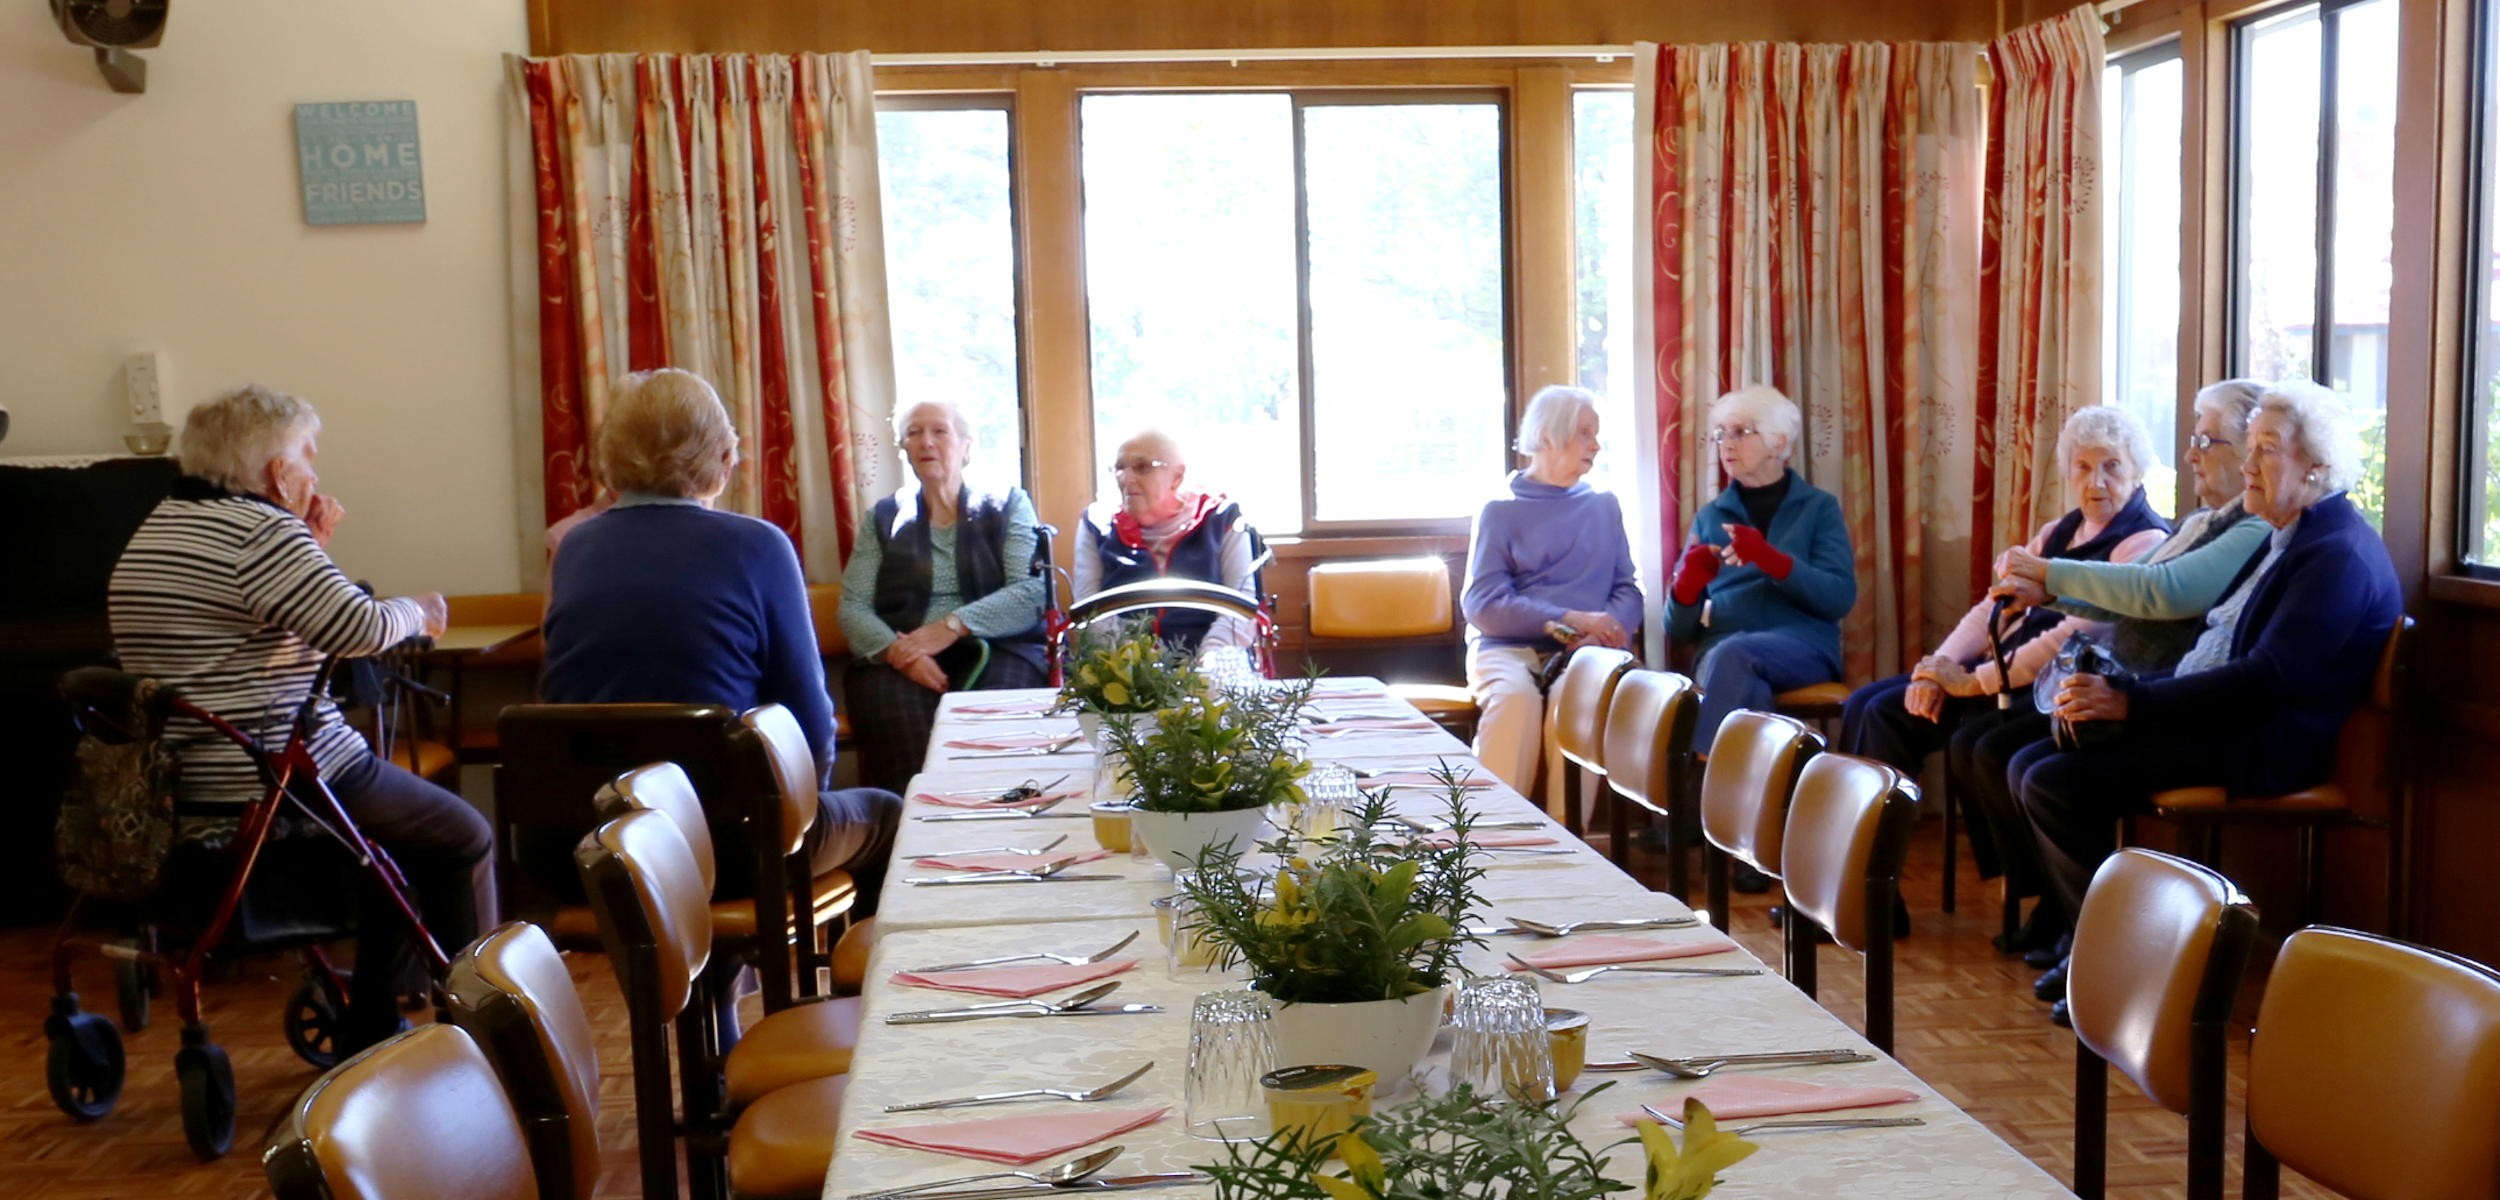 inverell meals on wheels socialise